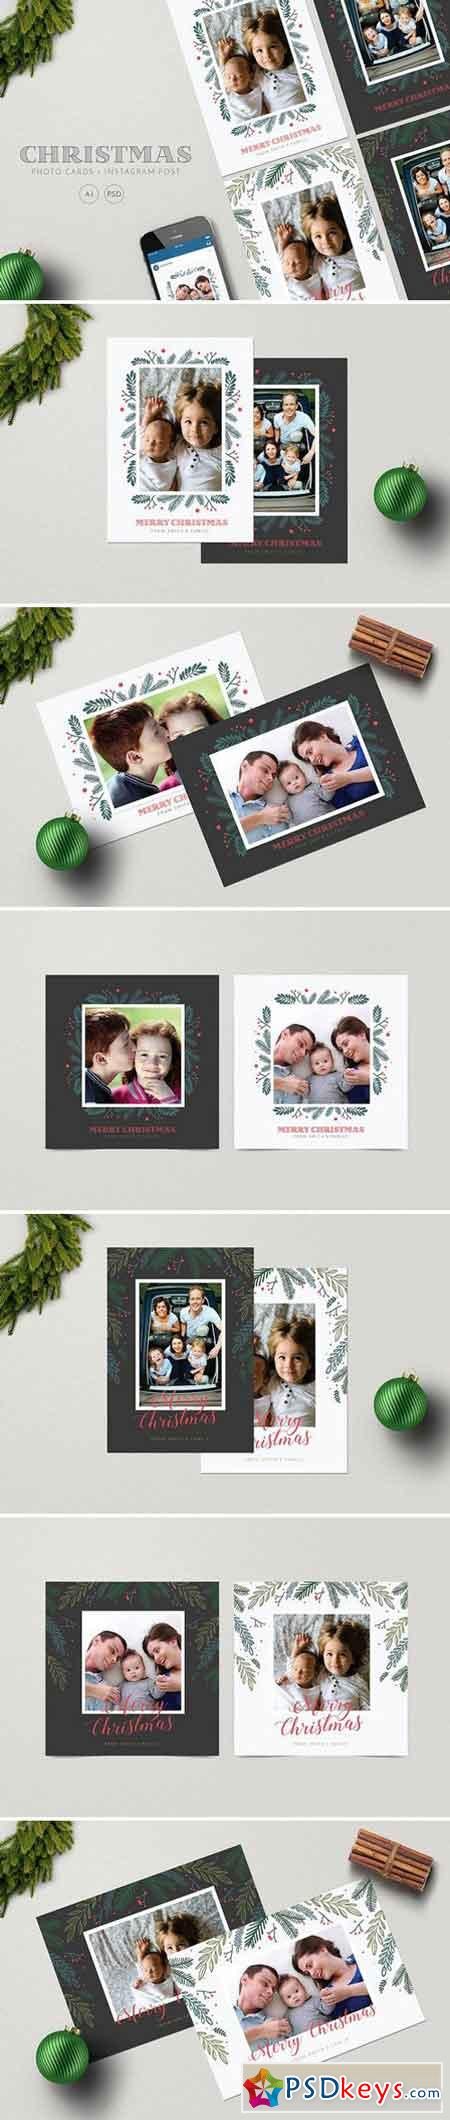 Christmas Photo Cards + Instagram 2055167